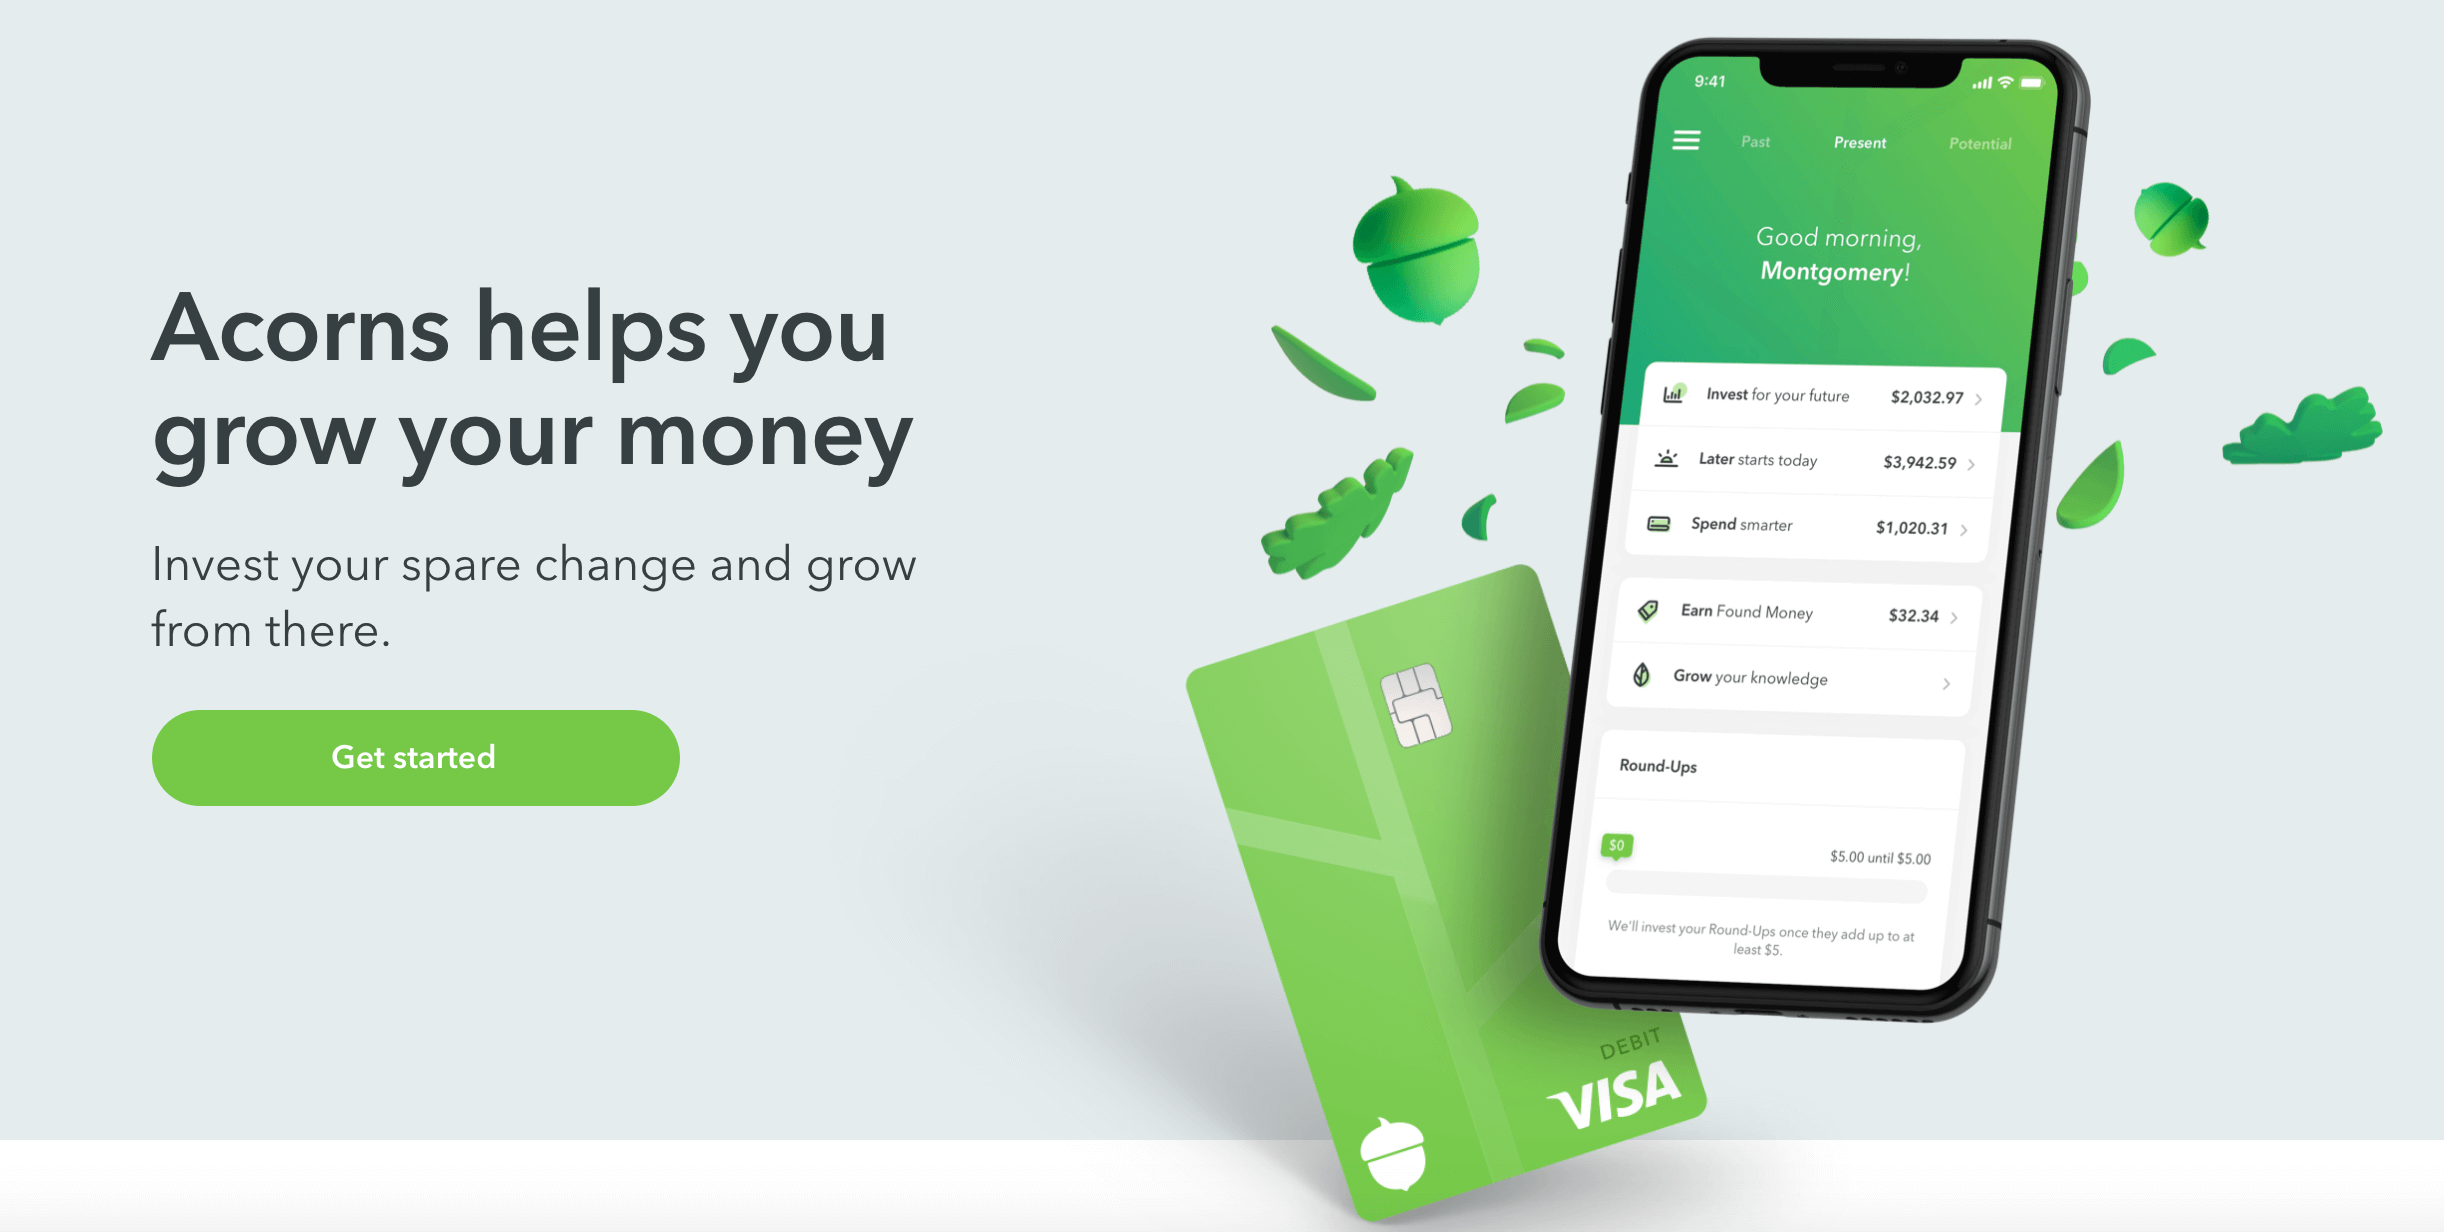 7 Of The Best Investing Apps For People On The Go - Acorns